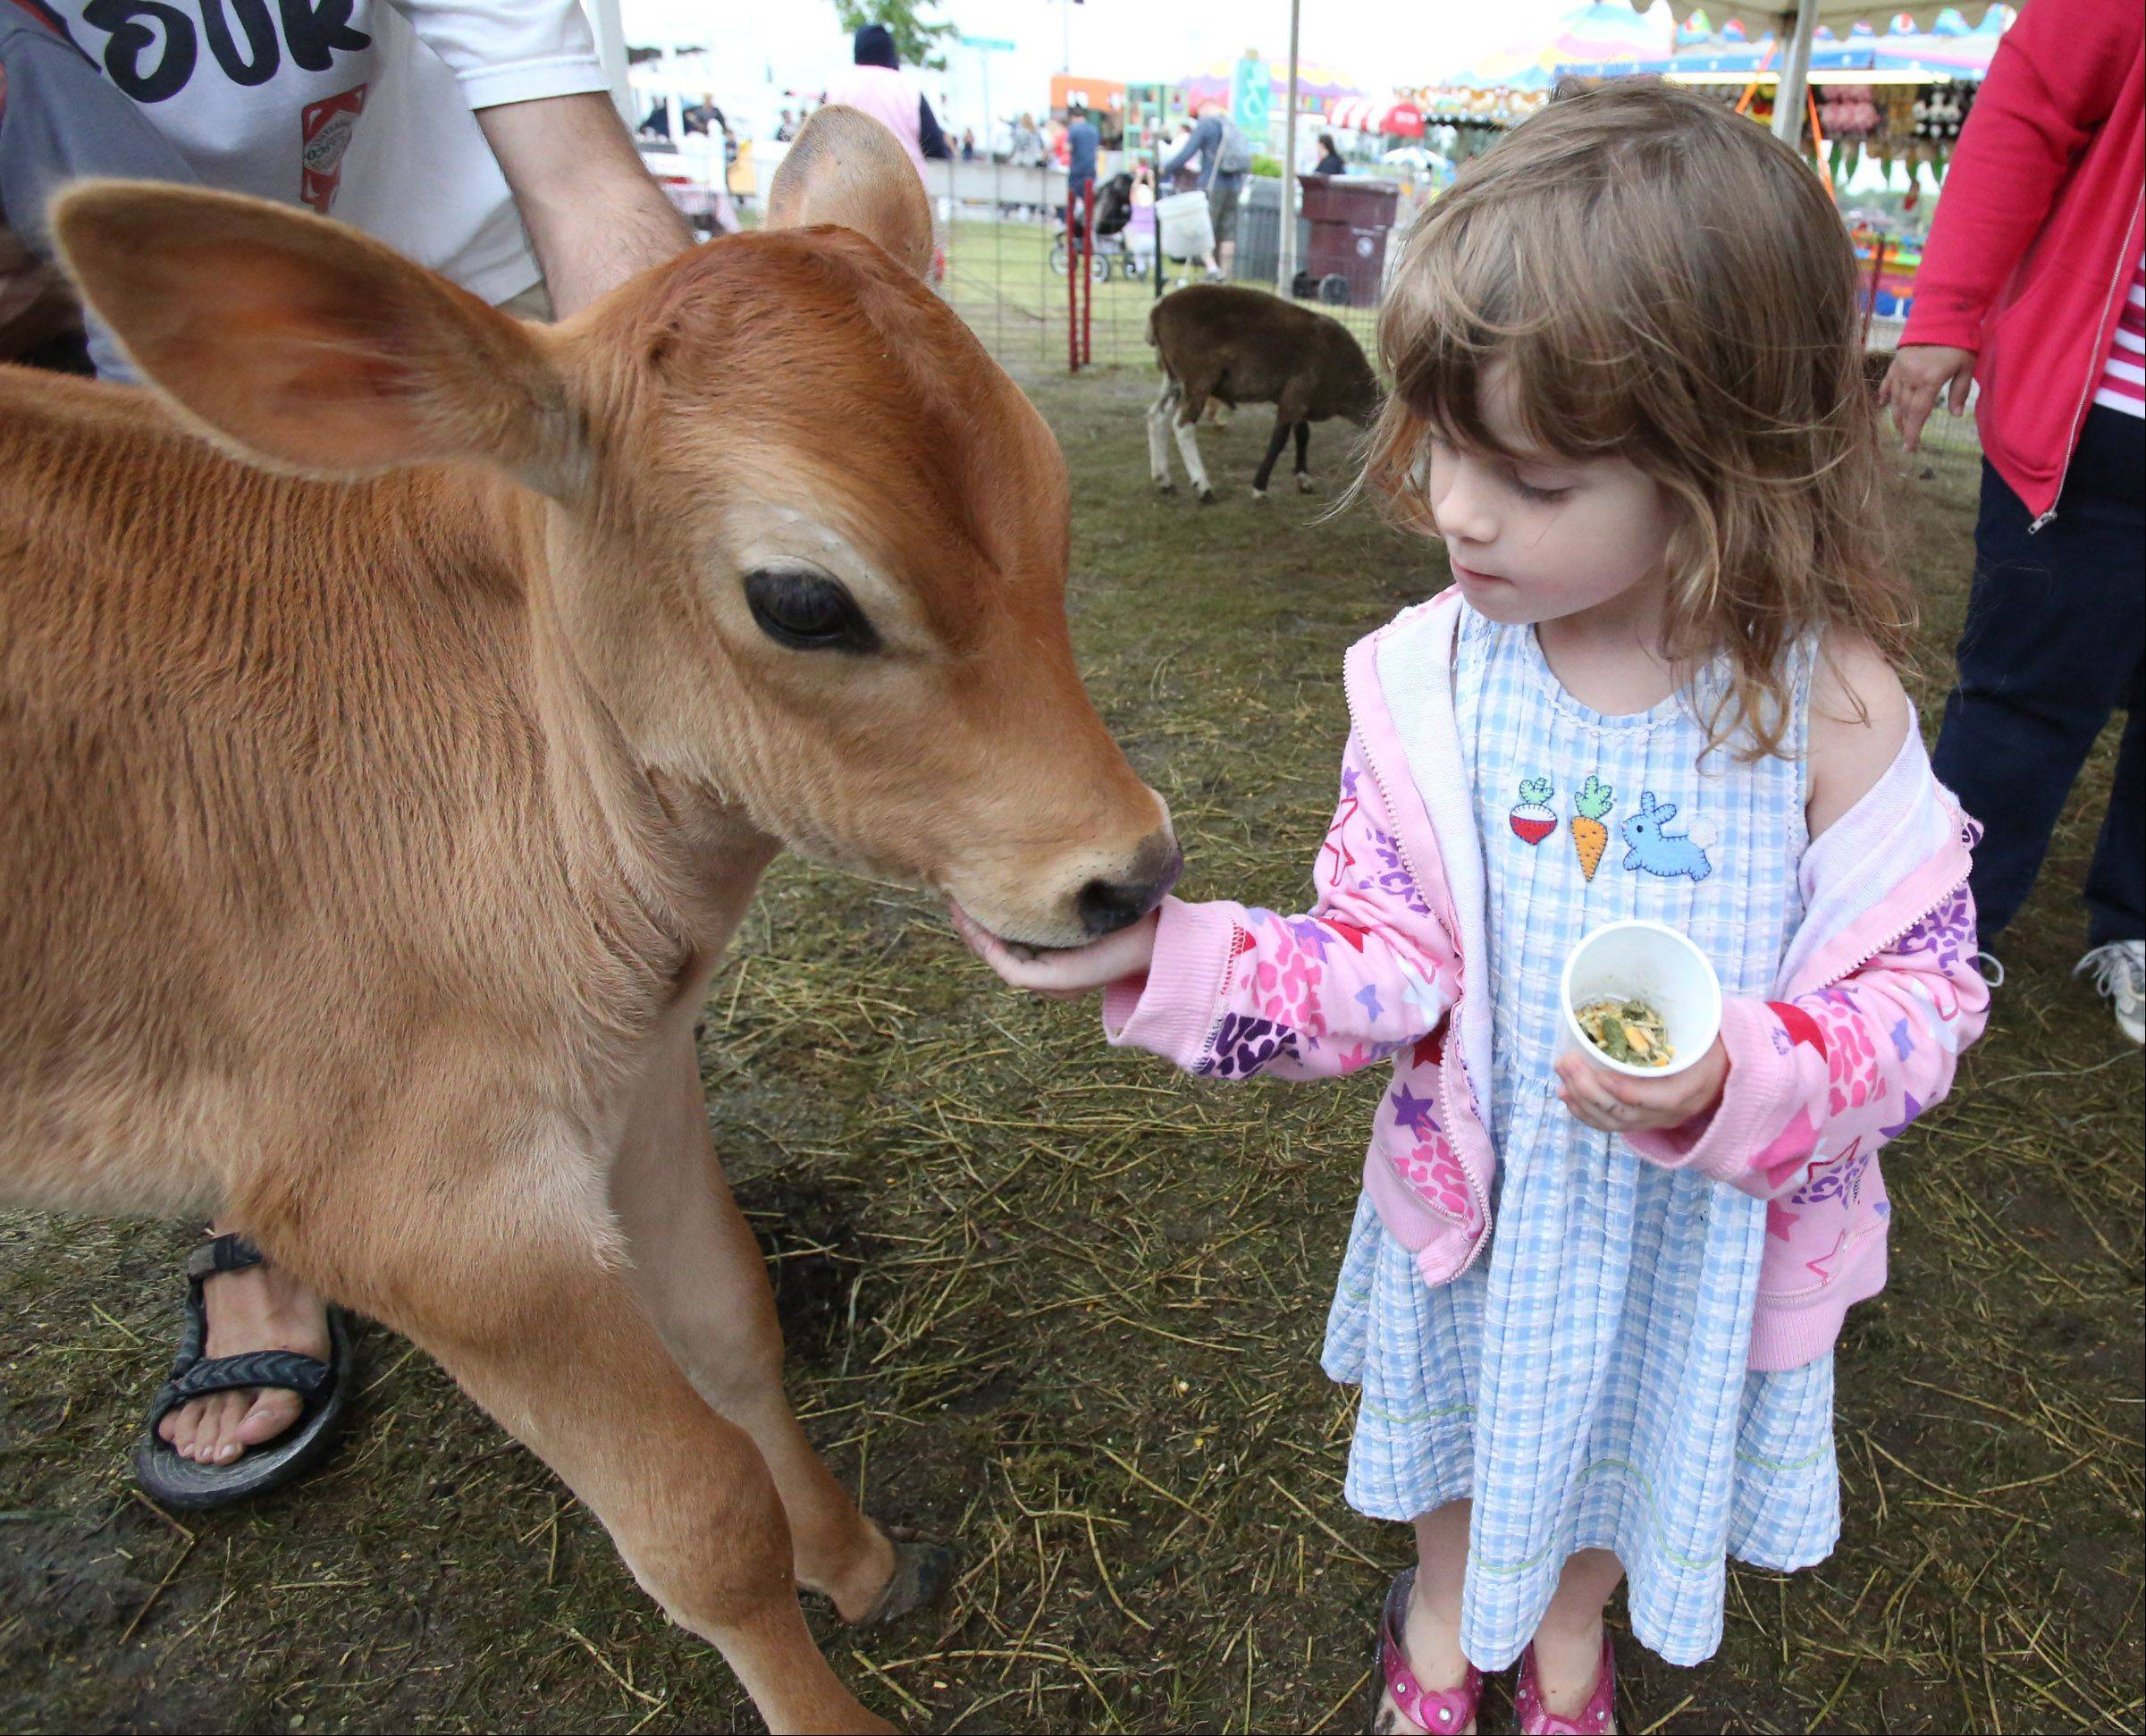 Quincie Carlson, 4, of Grayslake, feeds a calf in the petting zoo .